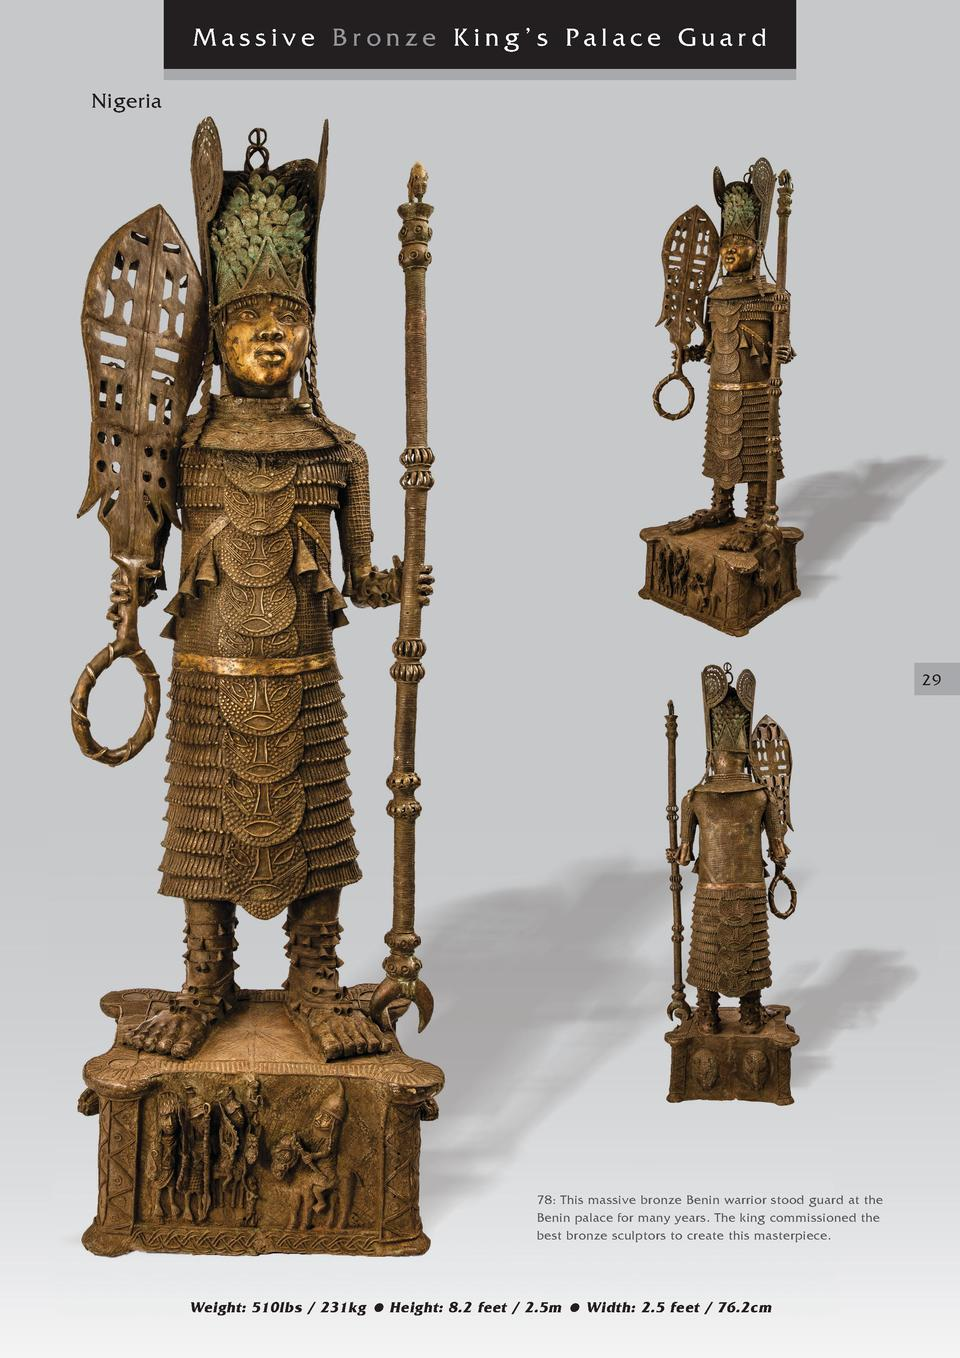 Massive Bronze King   s Palace Guard Nigeria  29  78  This massive bronze Benin warrior stood guard at the Benin palace fo...